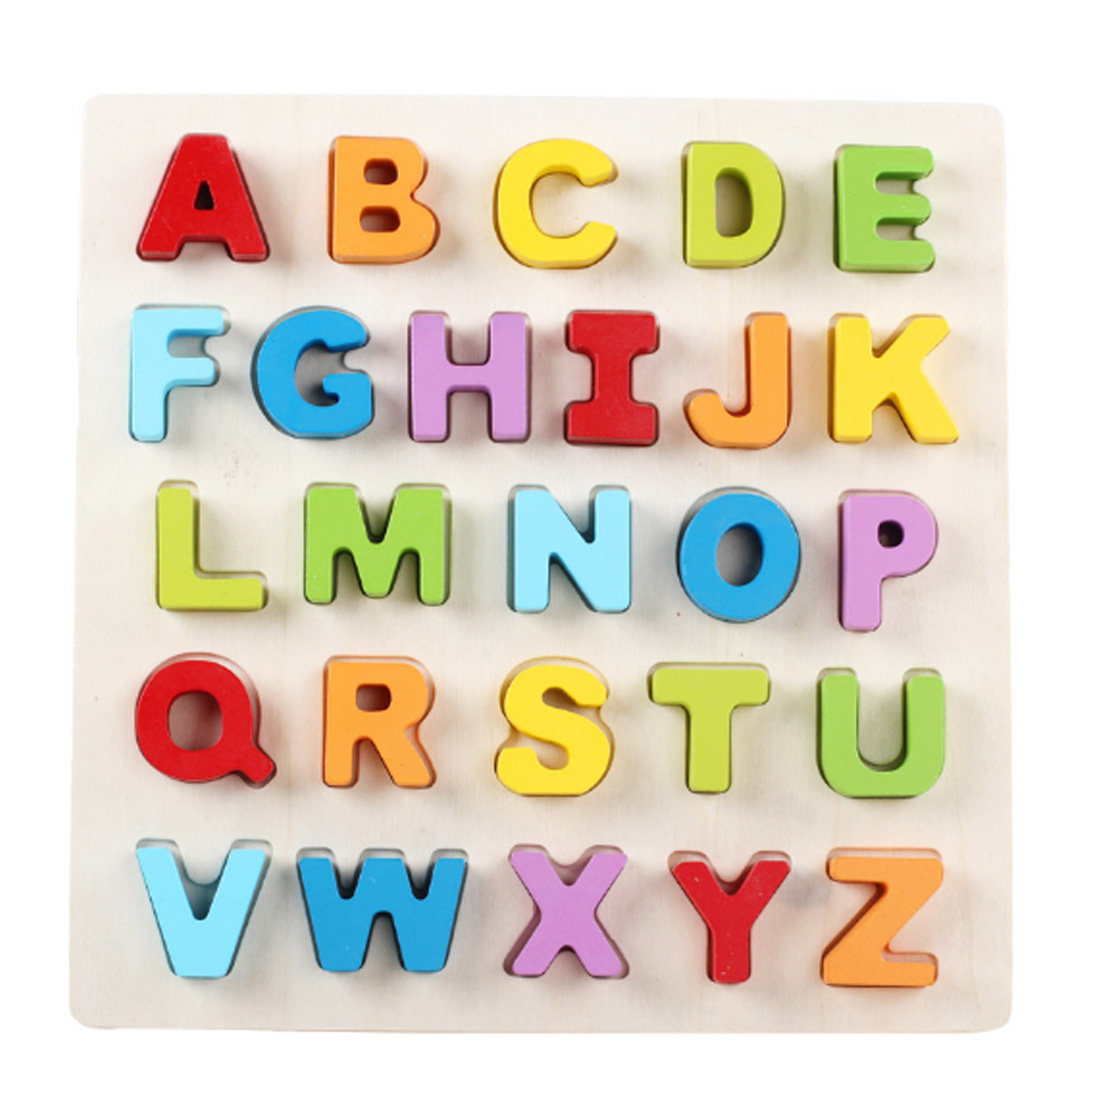 Alphabet Wooden Puzzle Abc Board 3d Kids Preschool Educational Learning Toy Puzzles For Children Intelligence Games